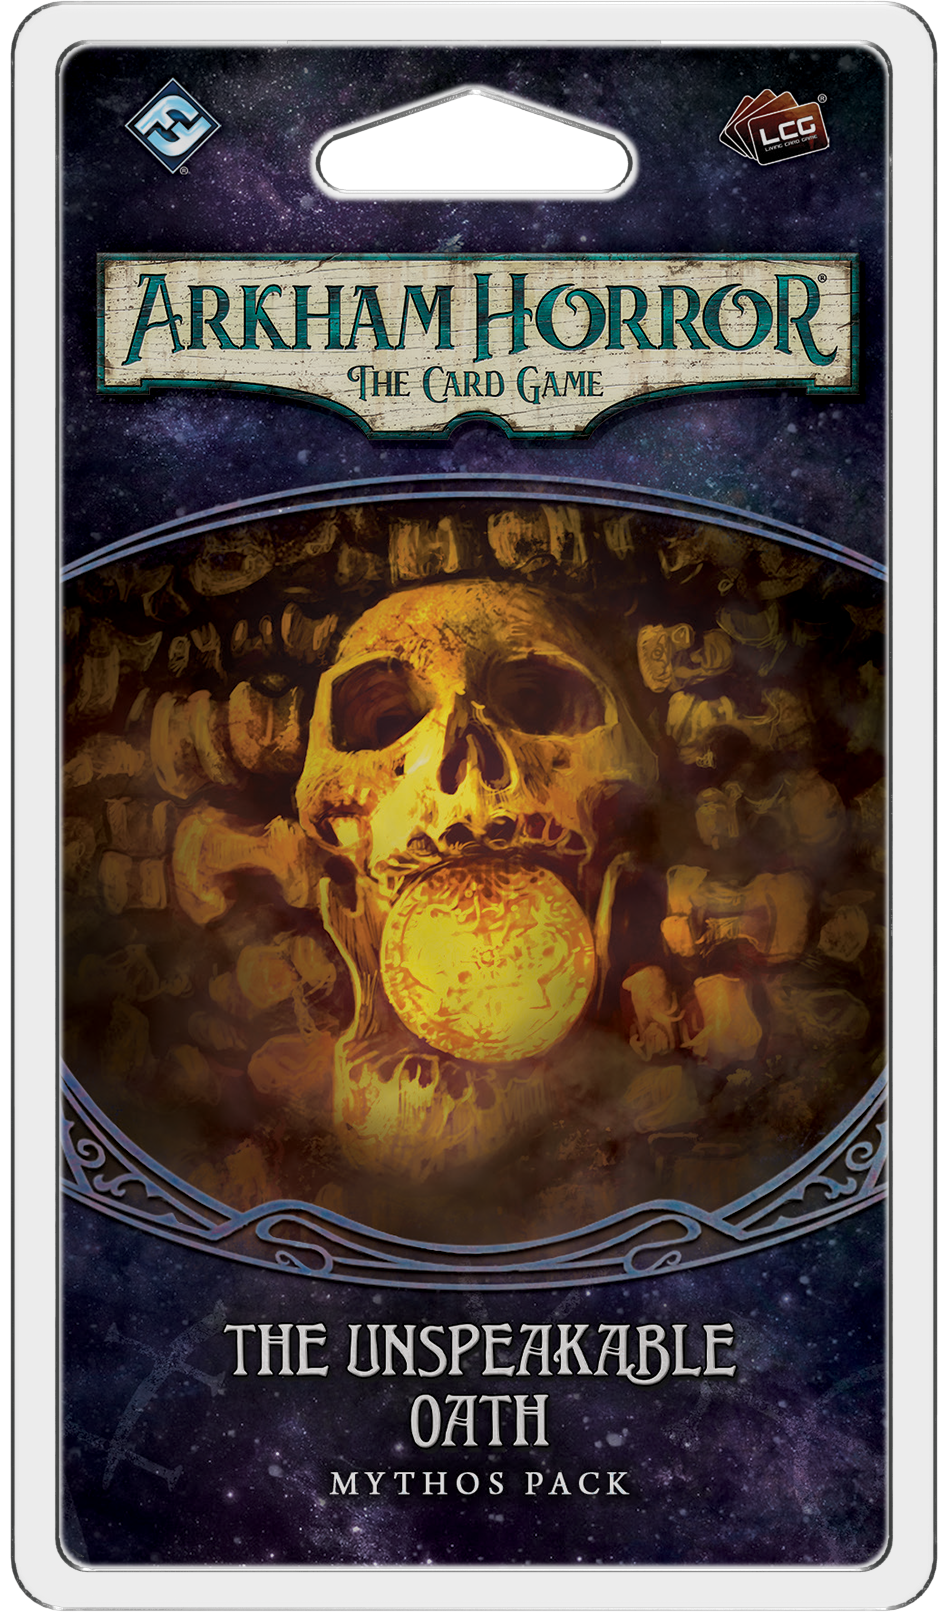 Arkham Horror: The Card Game (LCG) - The Unspeakable Oath Mythos Pack